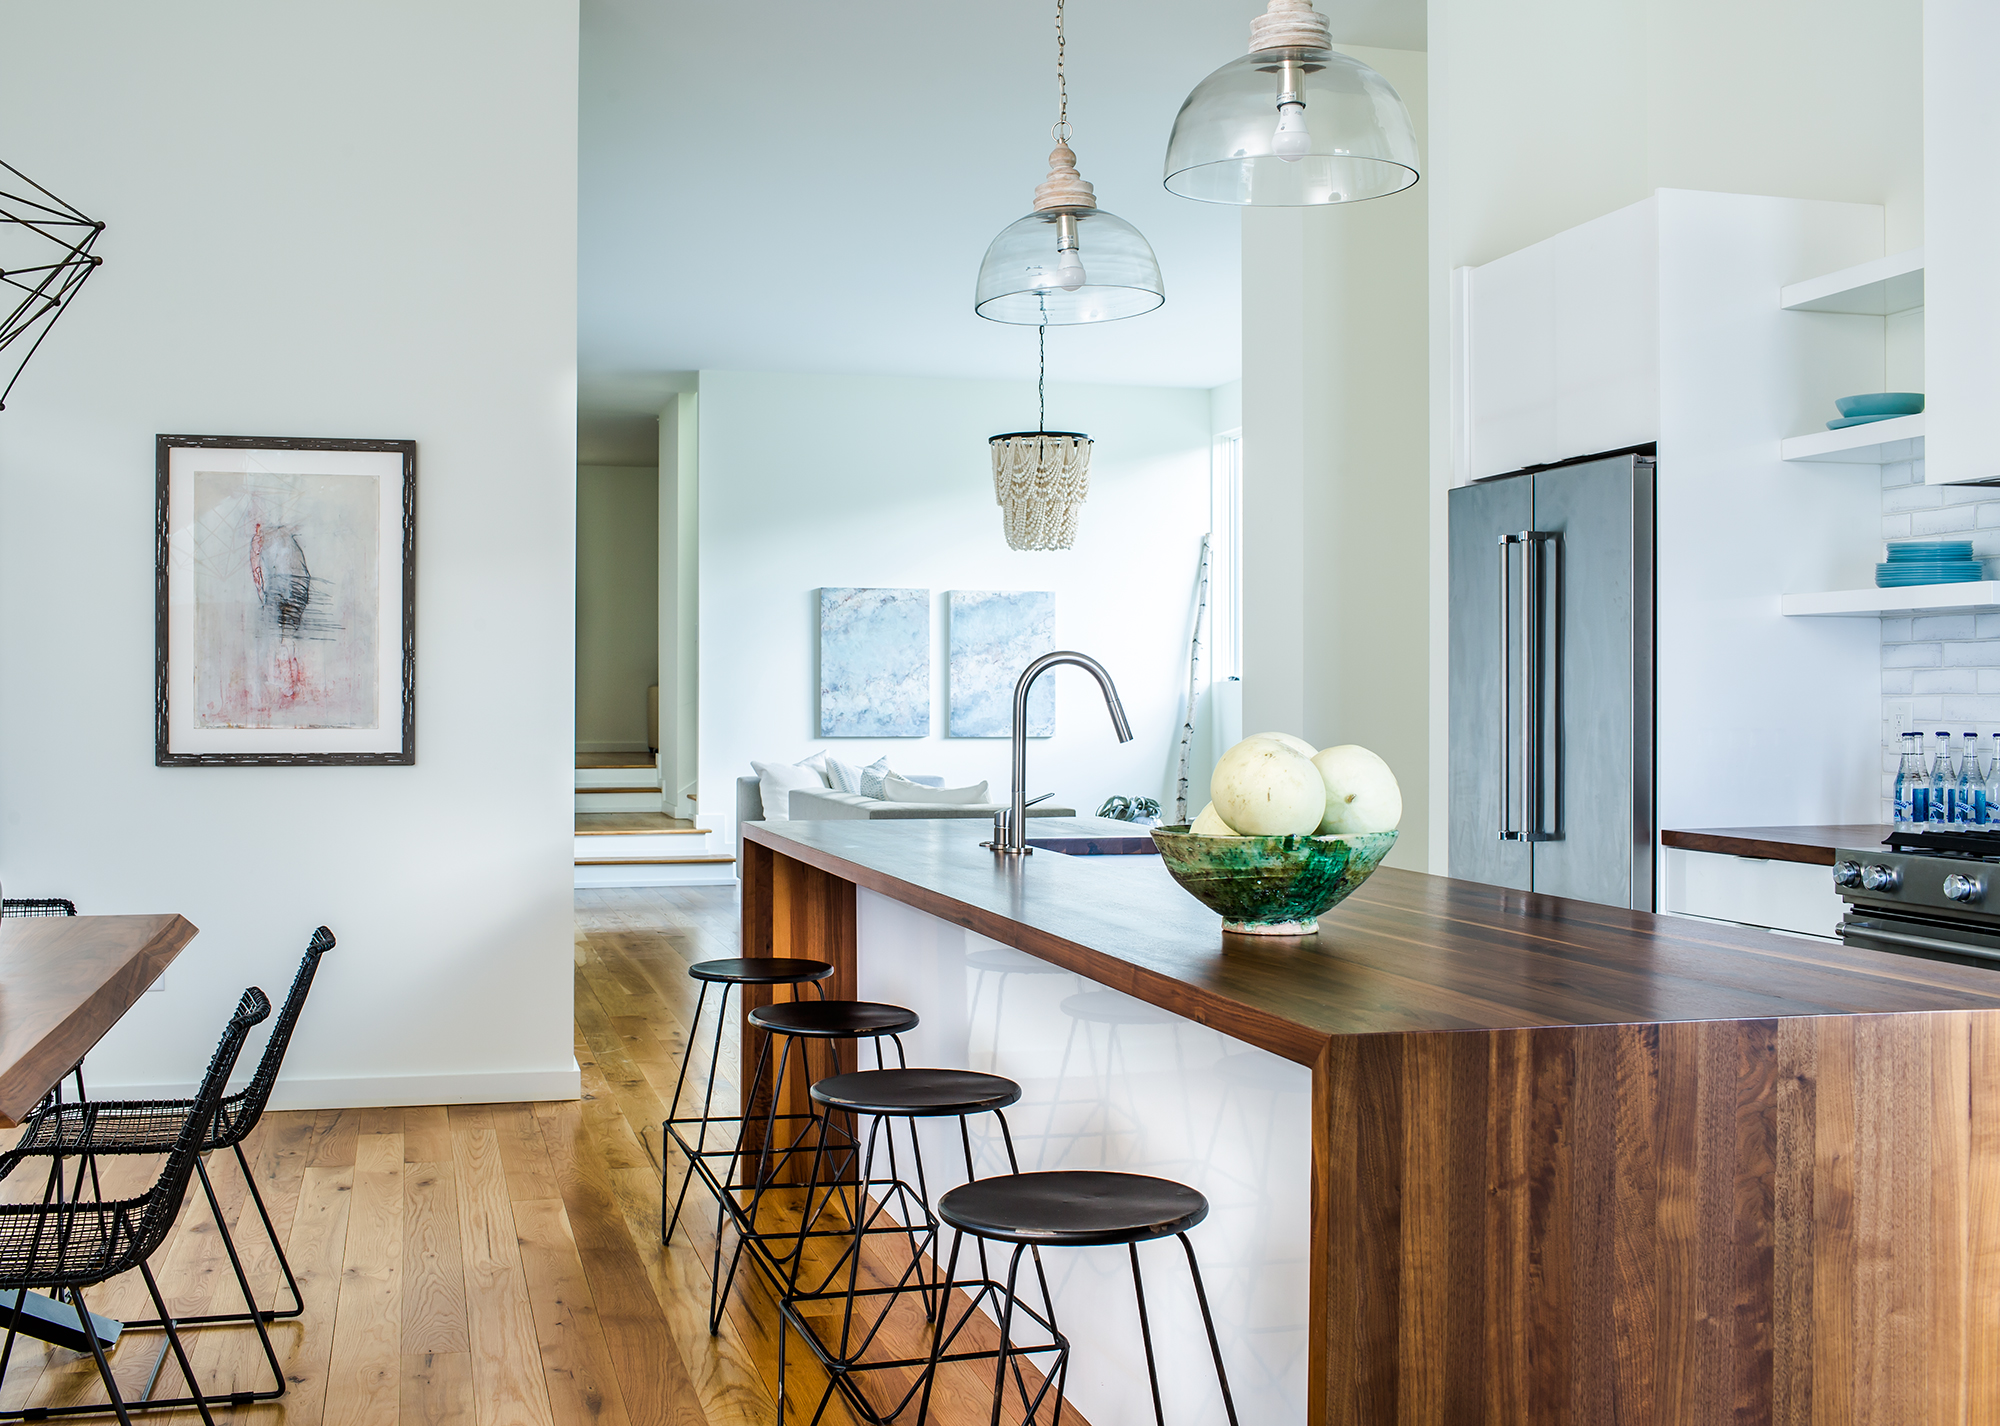 modern on connecticut ave kitchen \ jeff herr photography